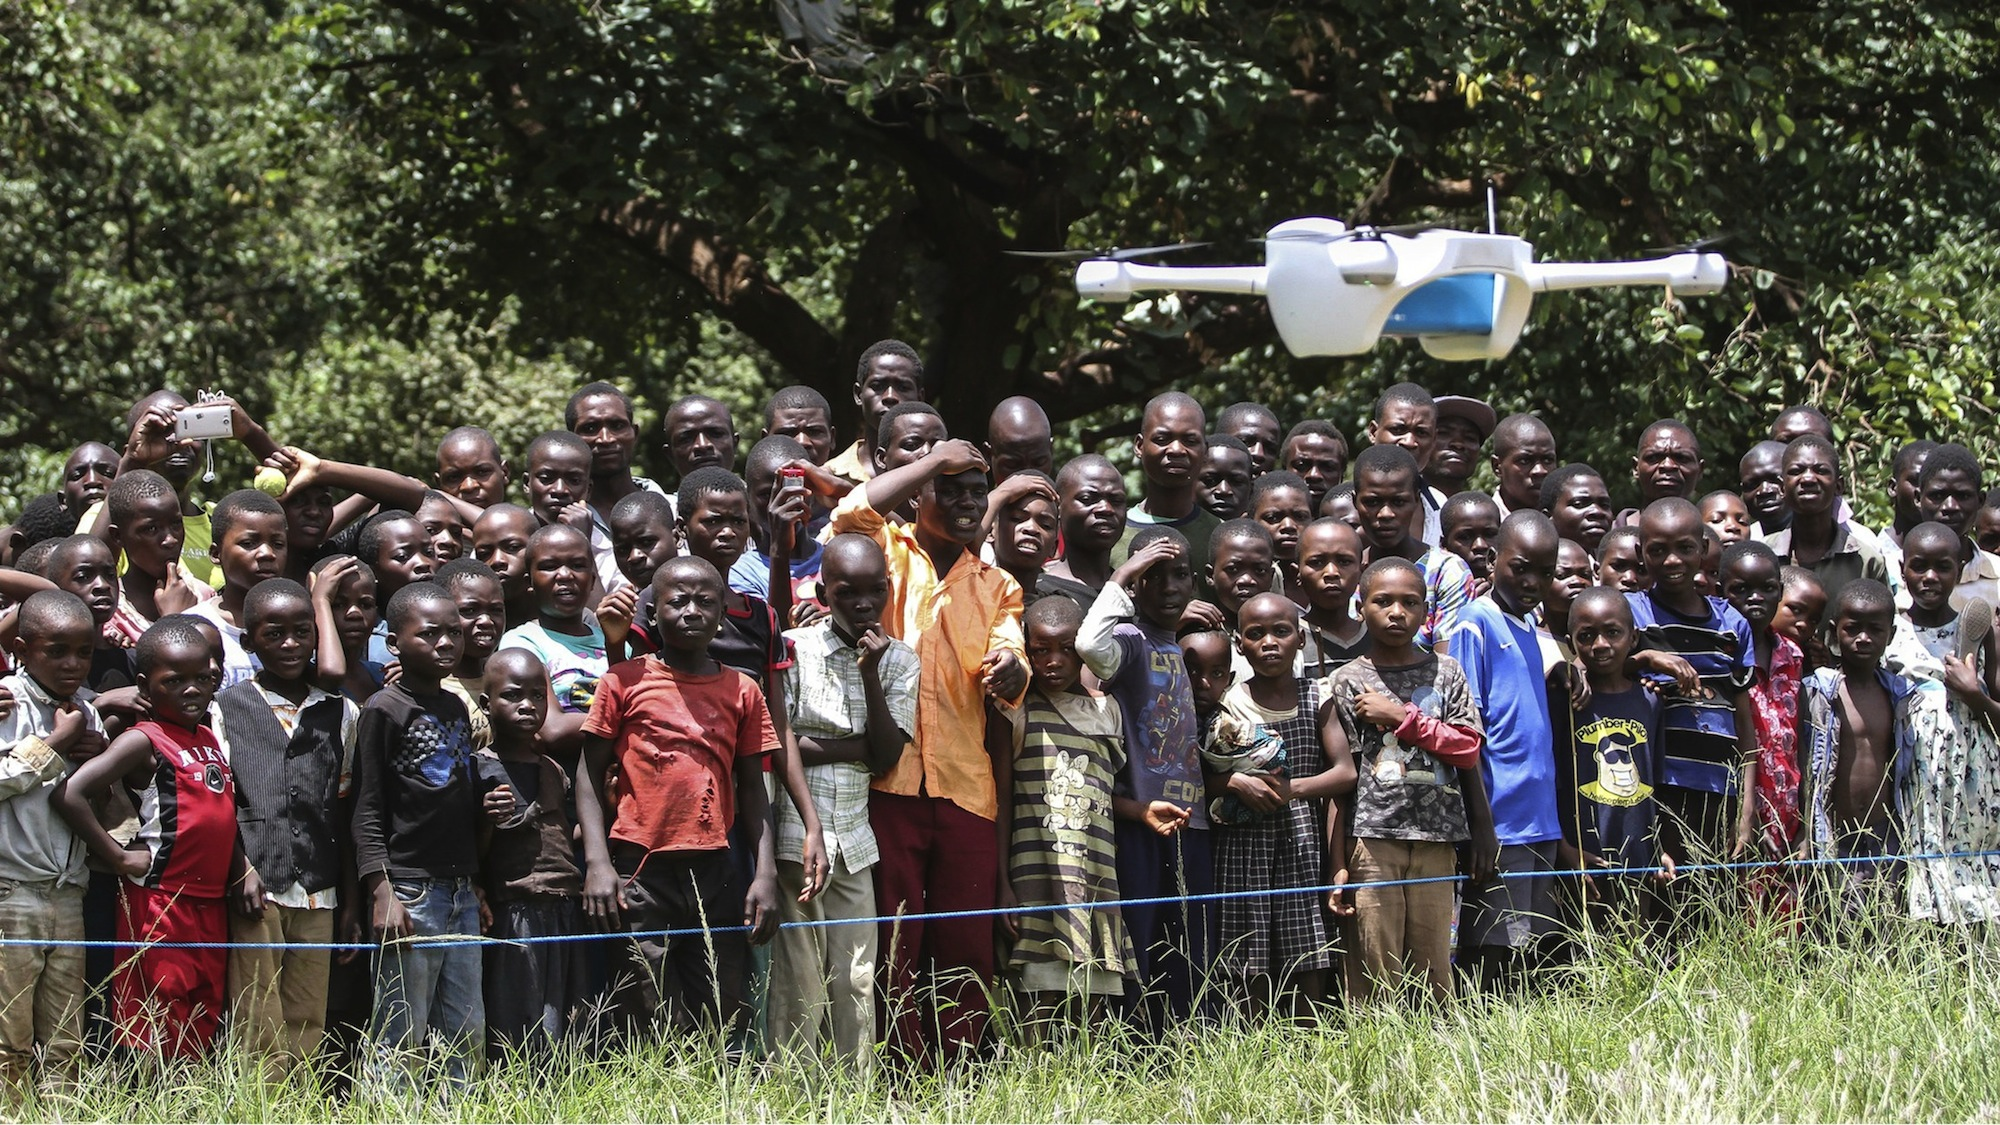 Children in Lilongwe, Malawi watch a drone designed to deliver HIV tests to hospitals